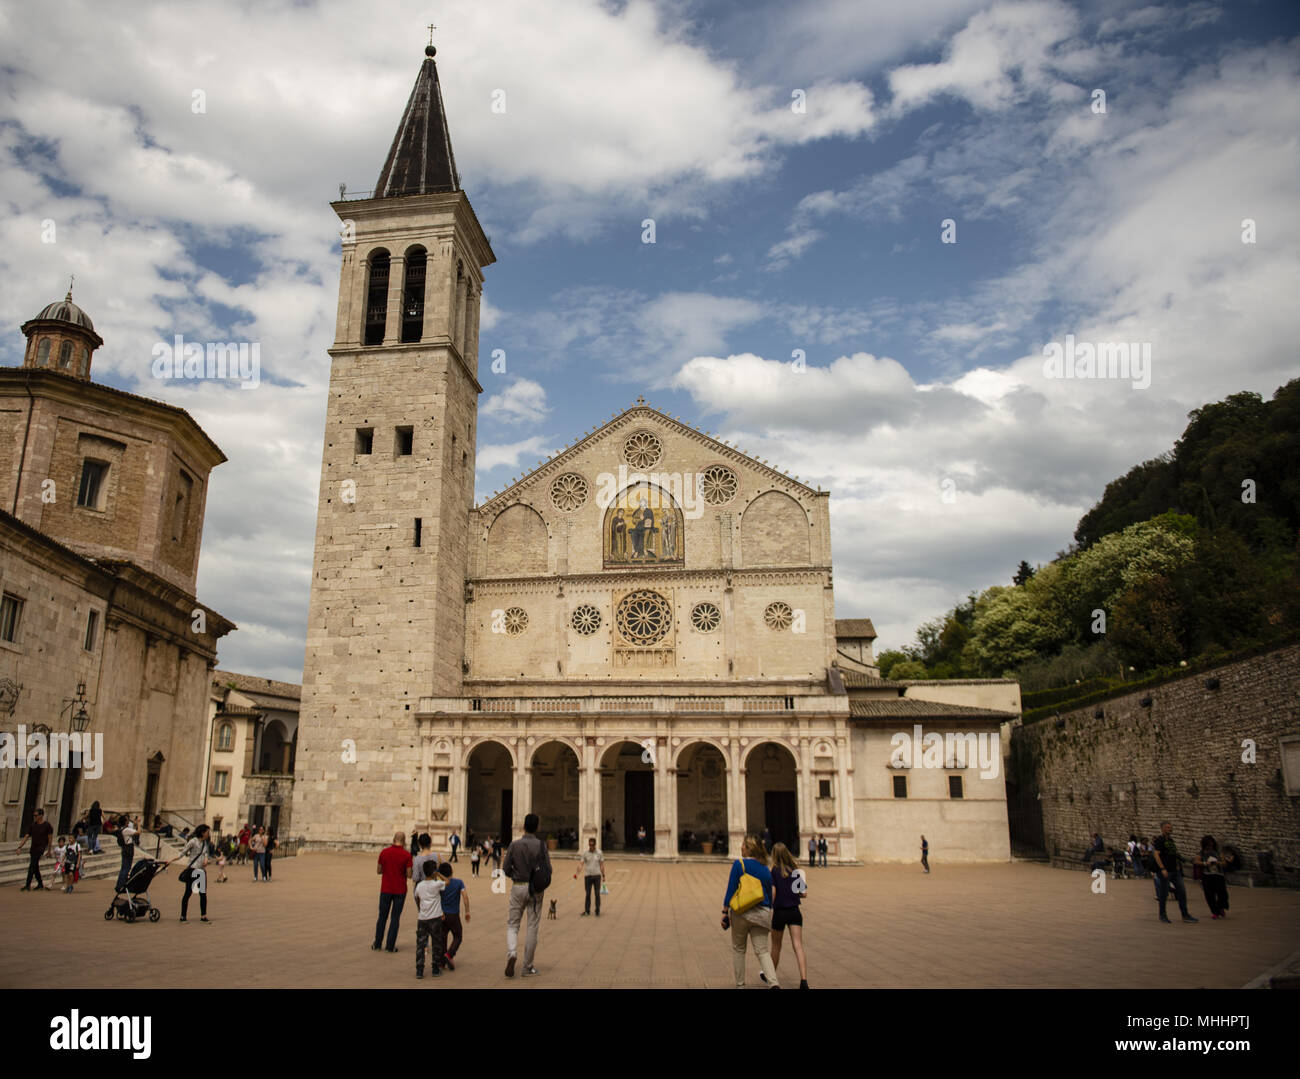 Palazzo Vescovile, museum and main square of the beautiful medieval city in the heart of the Umbria region, middle Italy. Stock Photo